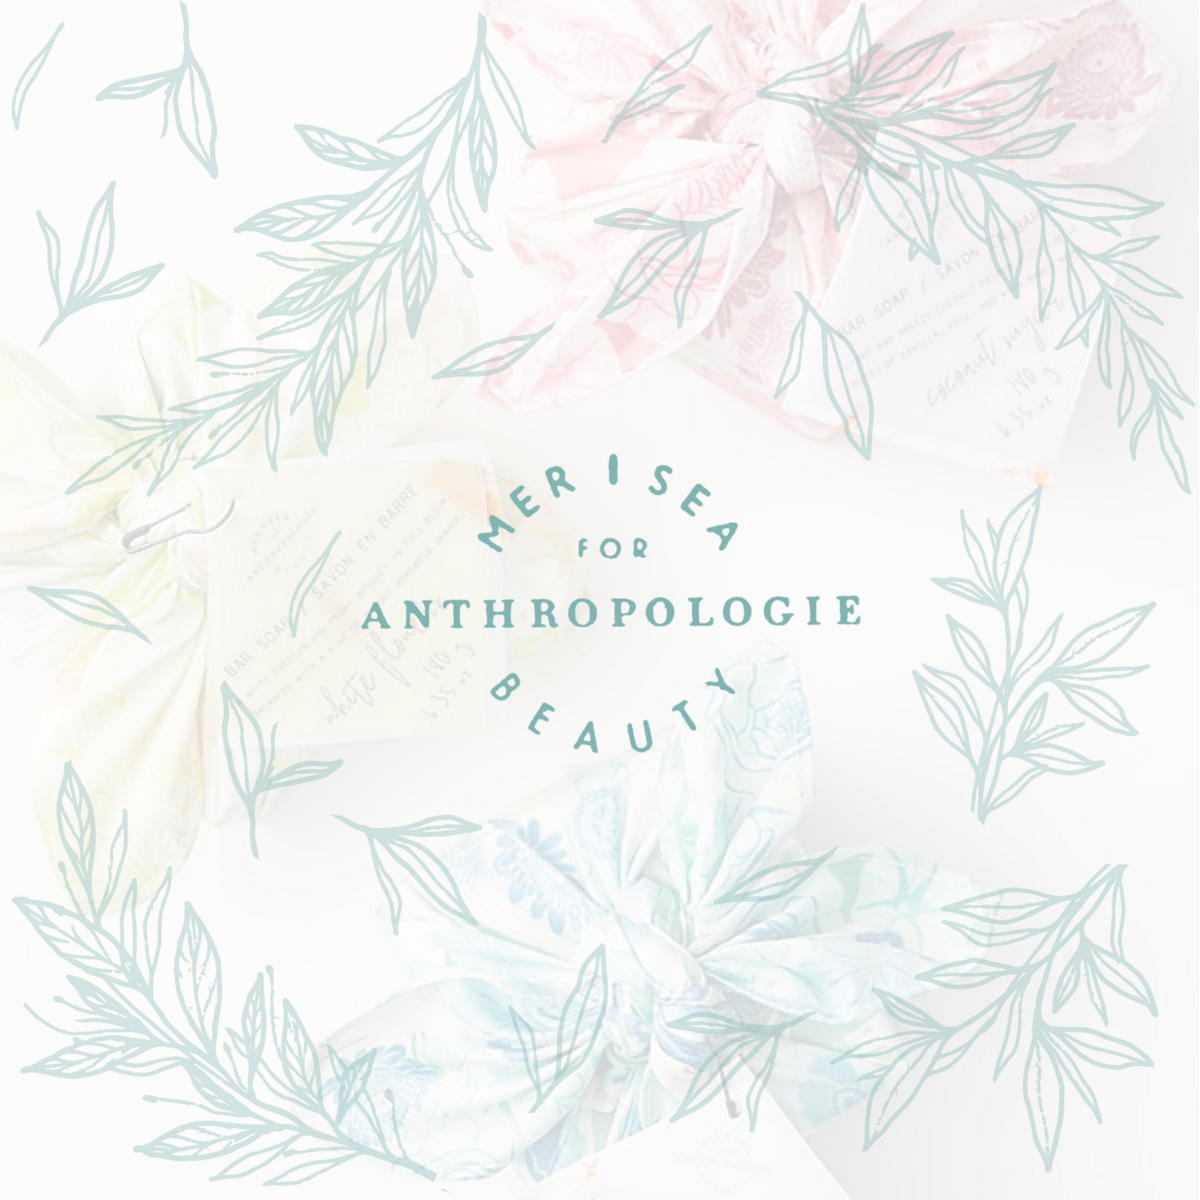 Anthropologie Project-Button-01